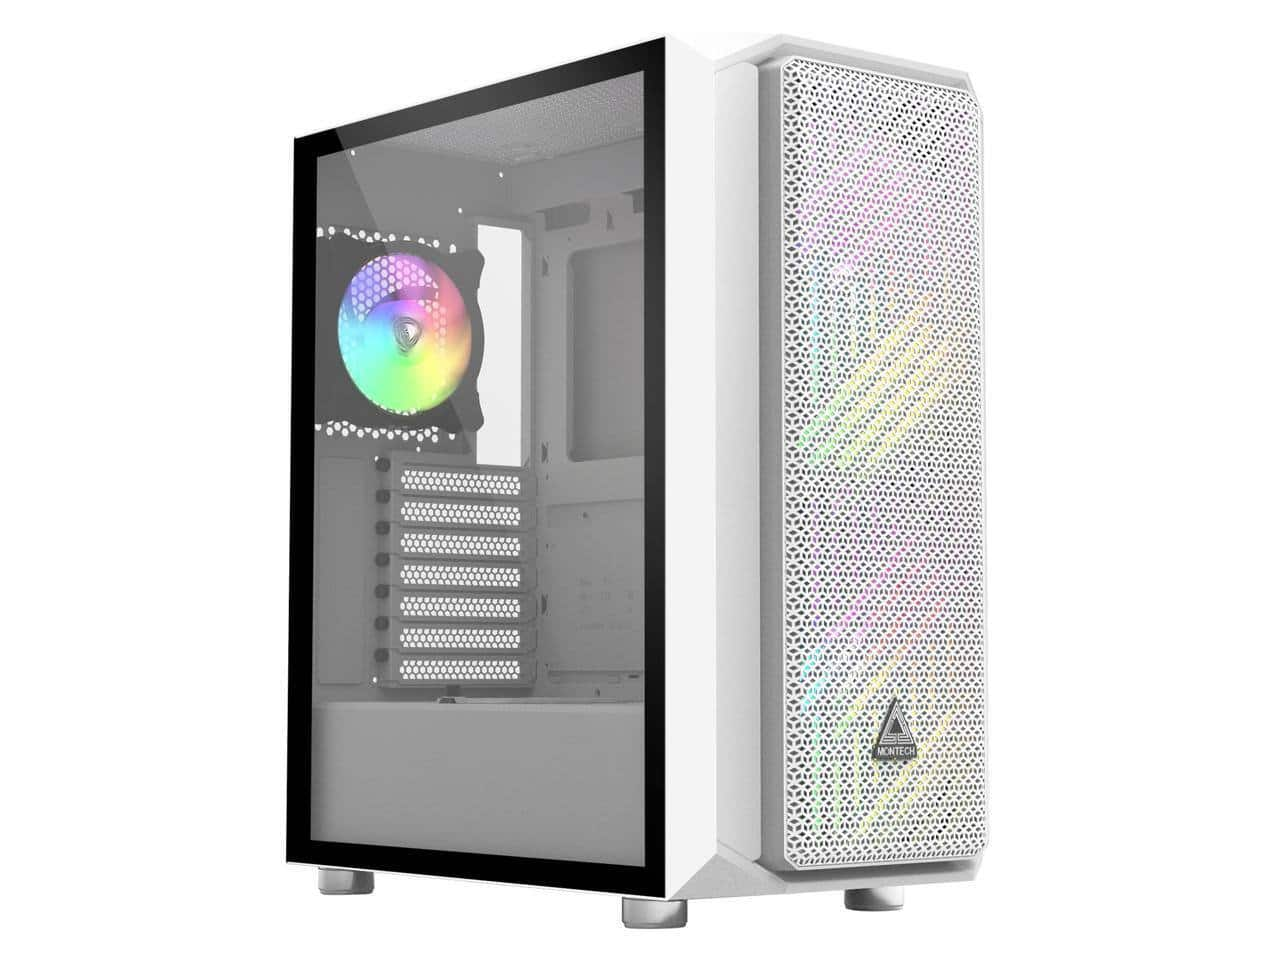 Montech Air X ARGB White ATX Mid-Tower Gaming Case [200mm ARGB Fans*2 & 120mm ARGB Fan*1 & Fan Controller Pre-Installed] for $59.99 + Free Shipping